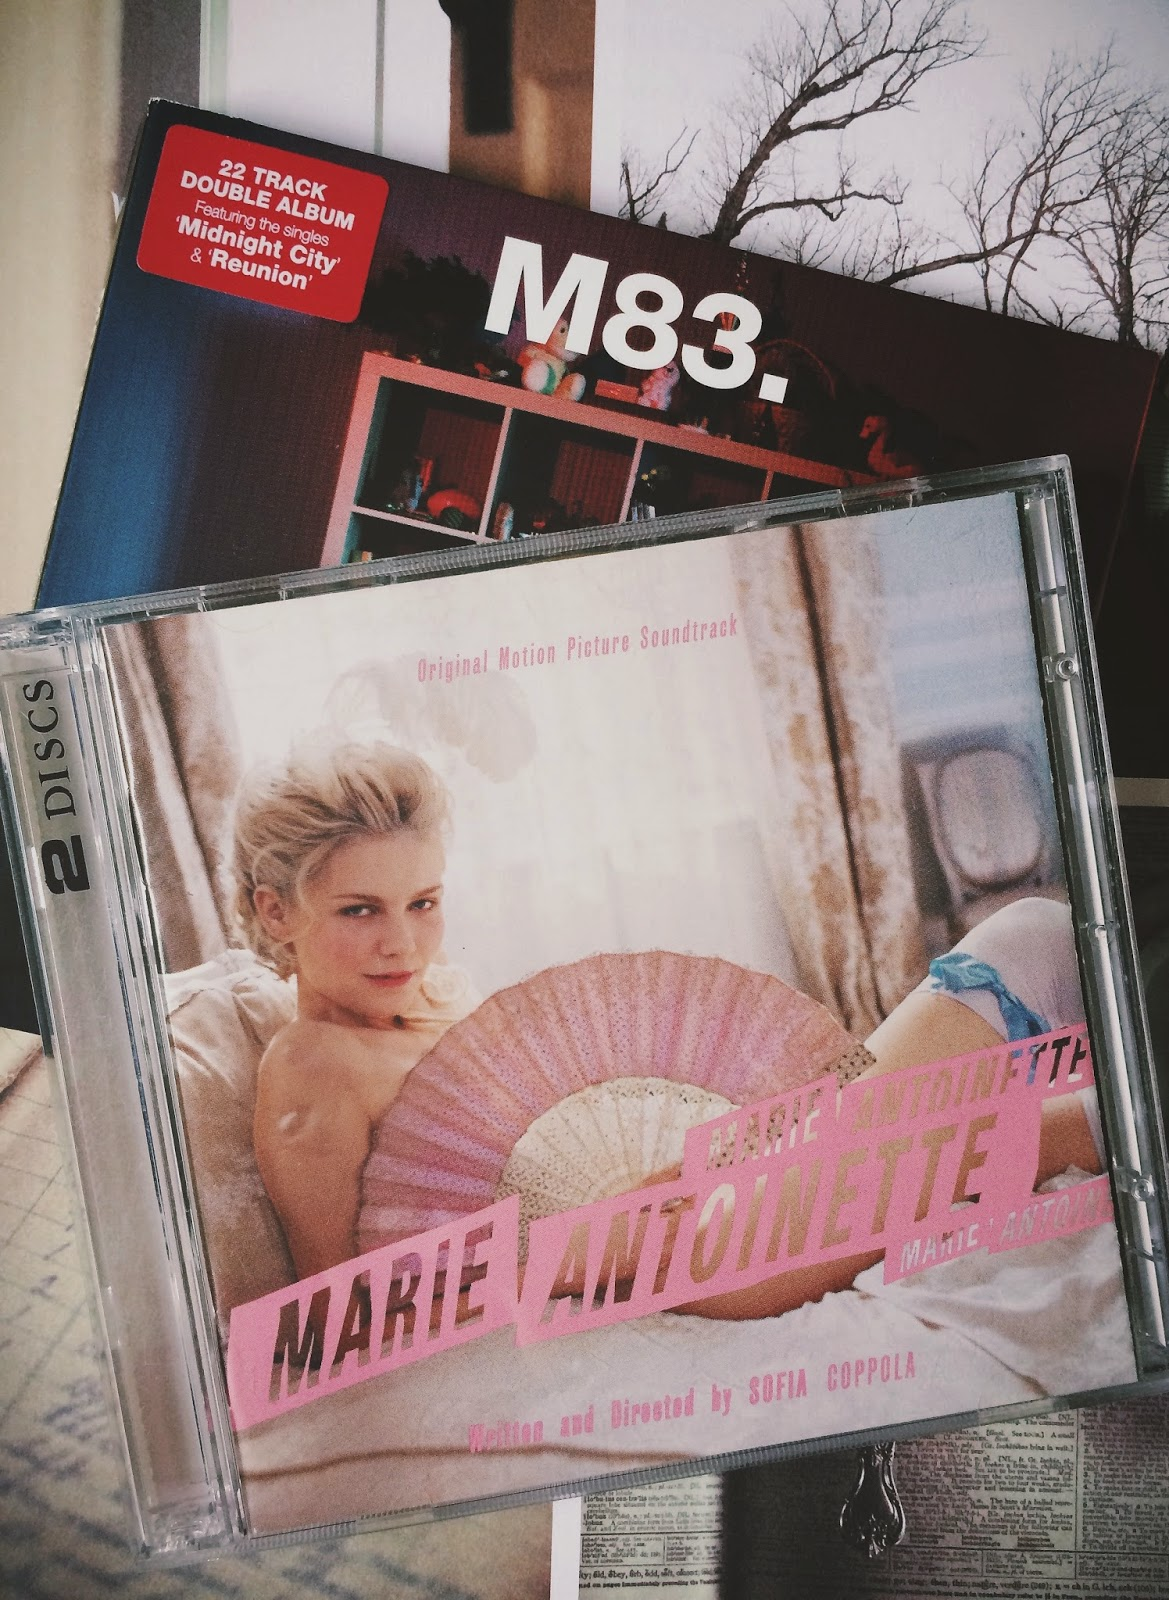 Spring Playlist, Bramble and Thorn, Marie Antoinette, M83, Music